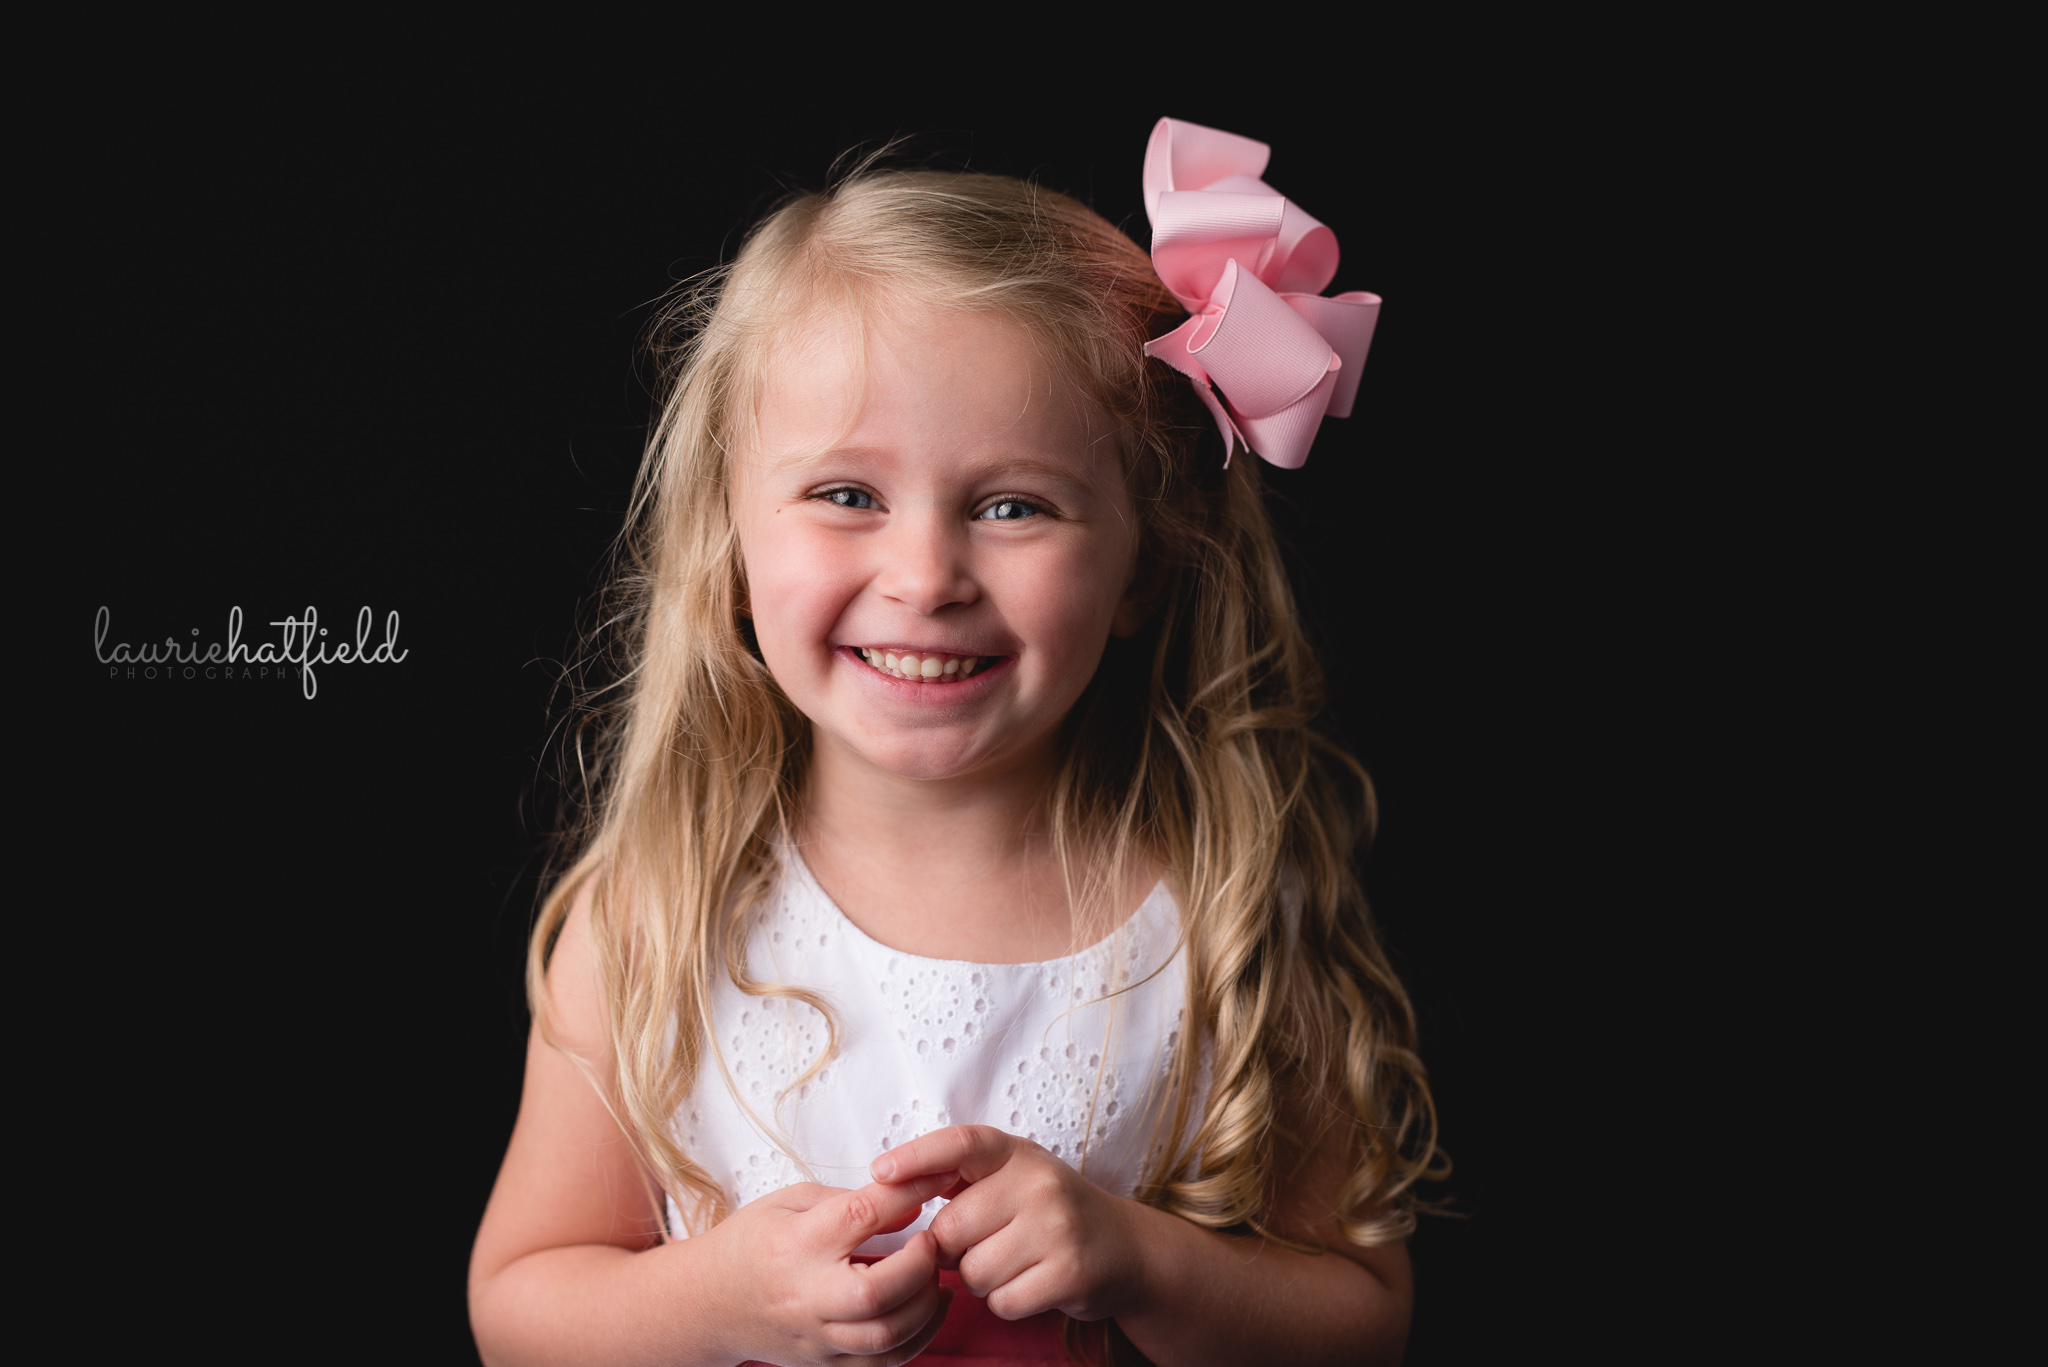 little girl with white dress and pink bow | Mobile AL school portraits